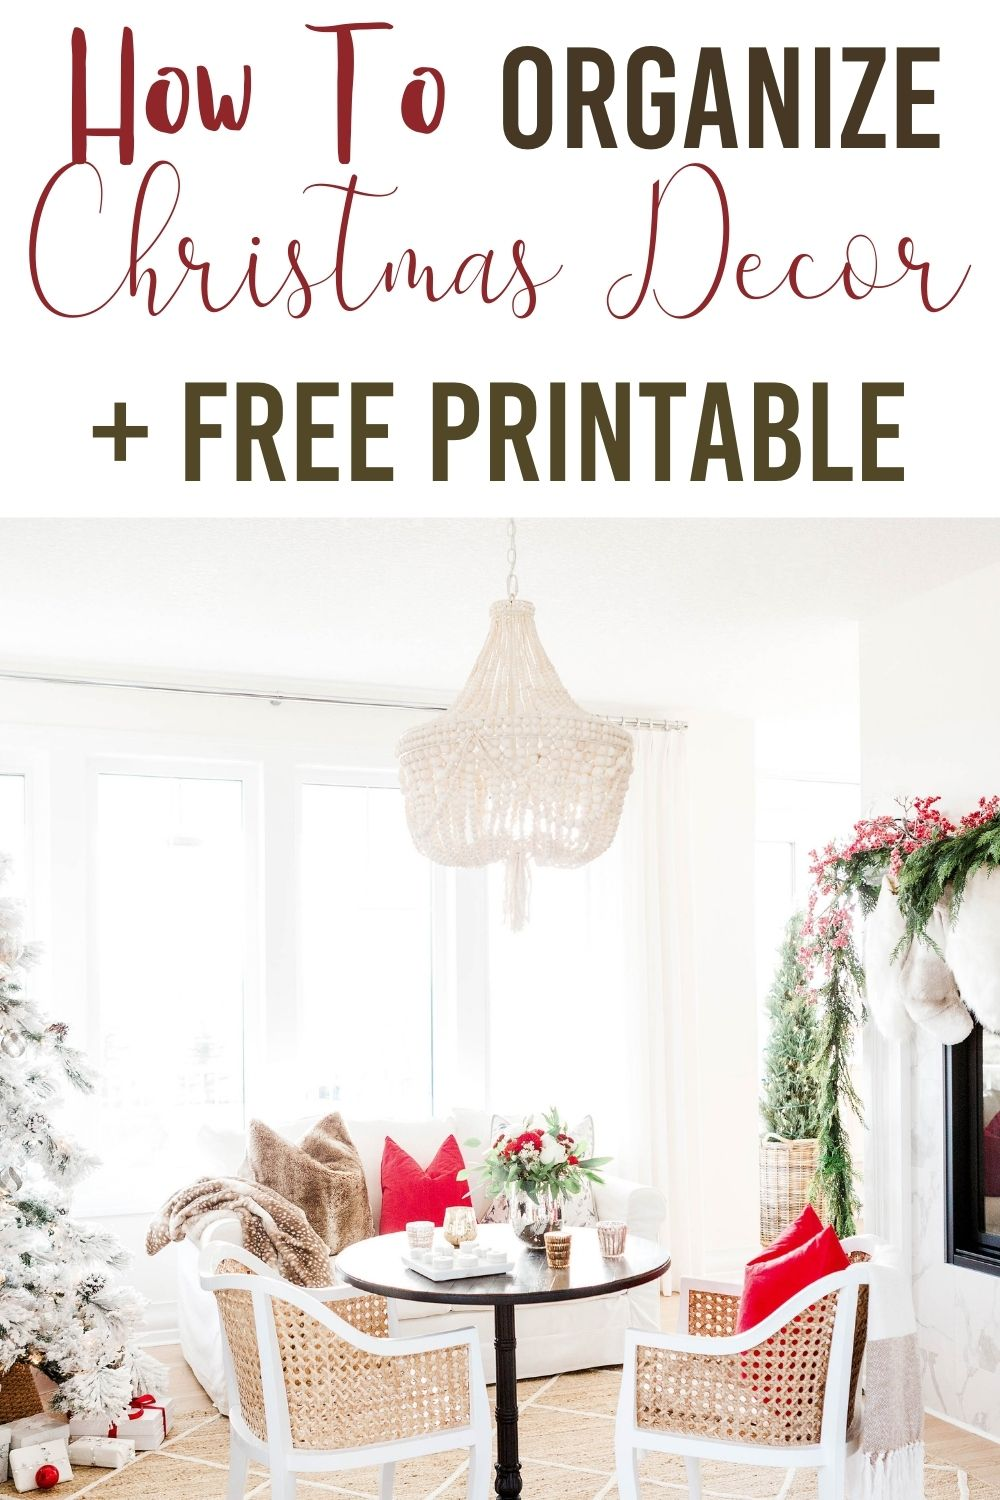 Learn how to organize Christmas decoration with ease. Get the organizing tips to help store your holiday decor. #organizing #organizingtips #organizinghacks #holidayorganizingtips #organizingtipsandtricks #christmasdecorations #christmasdecor via @homebyjenn